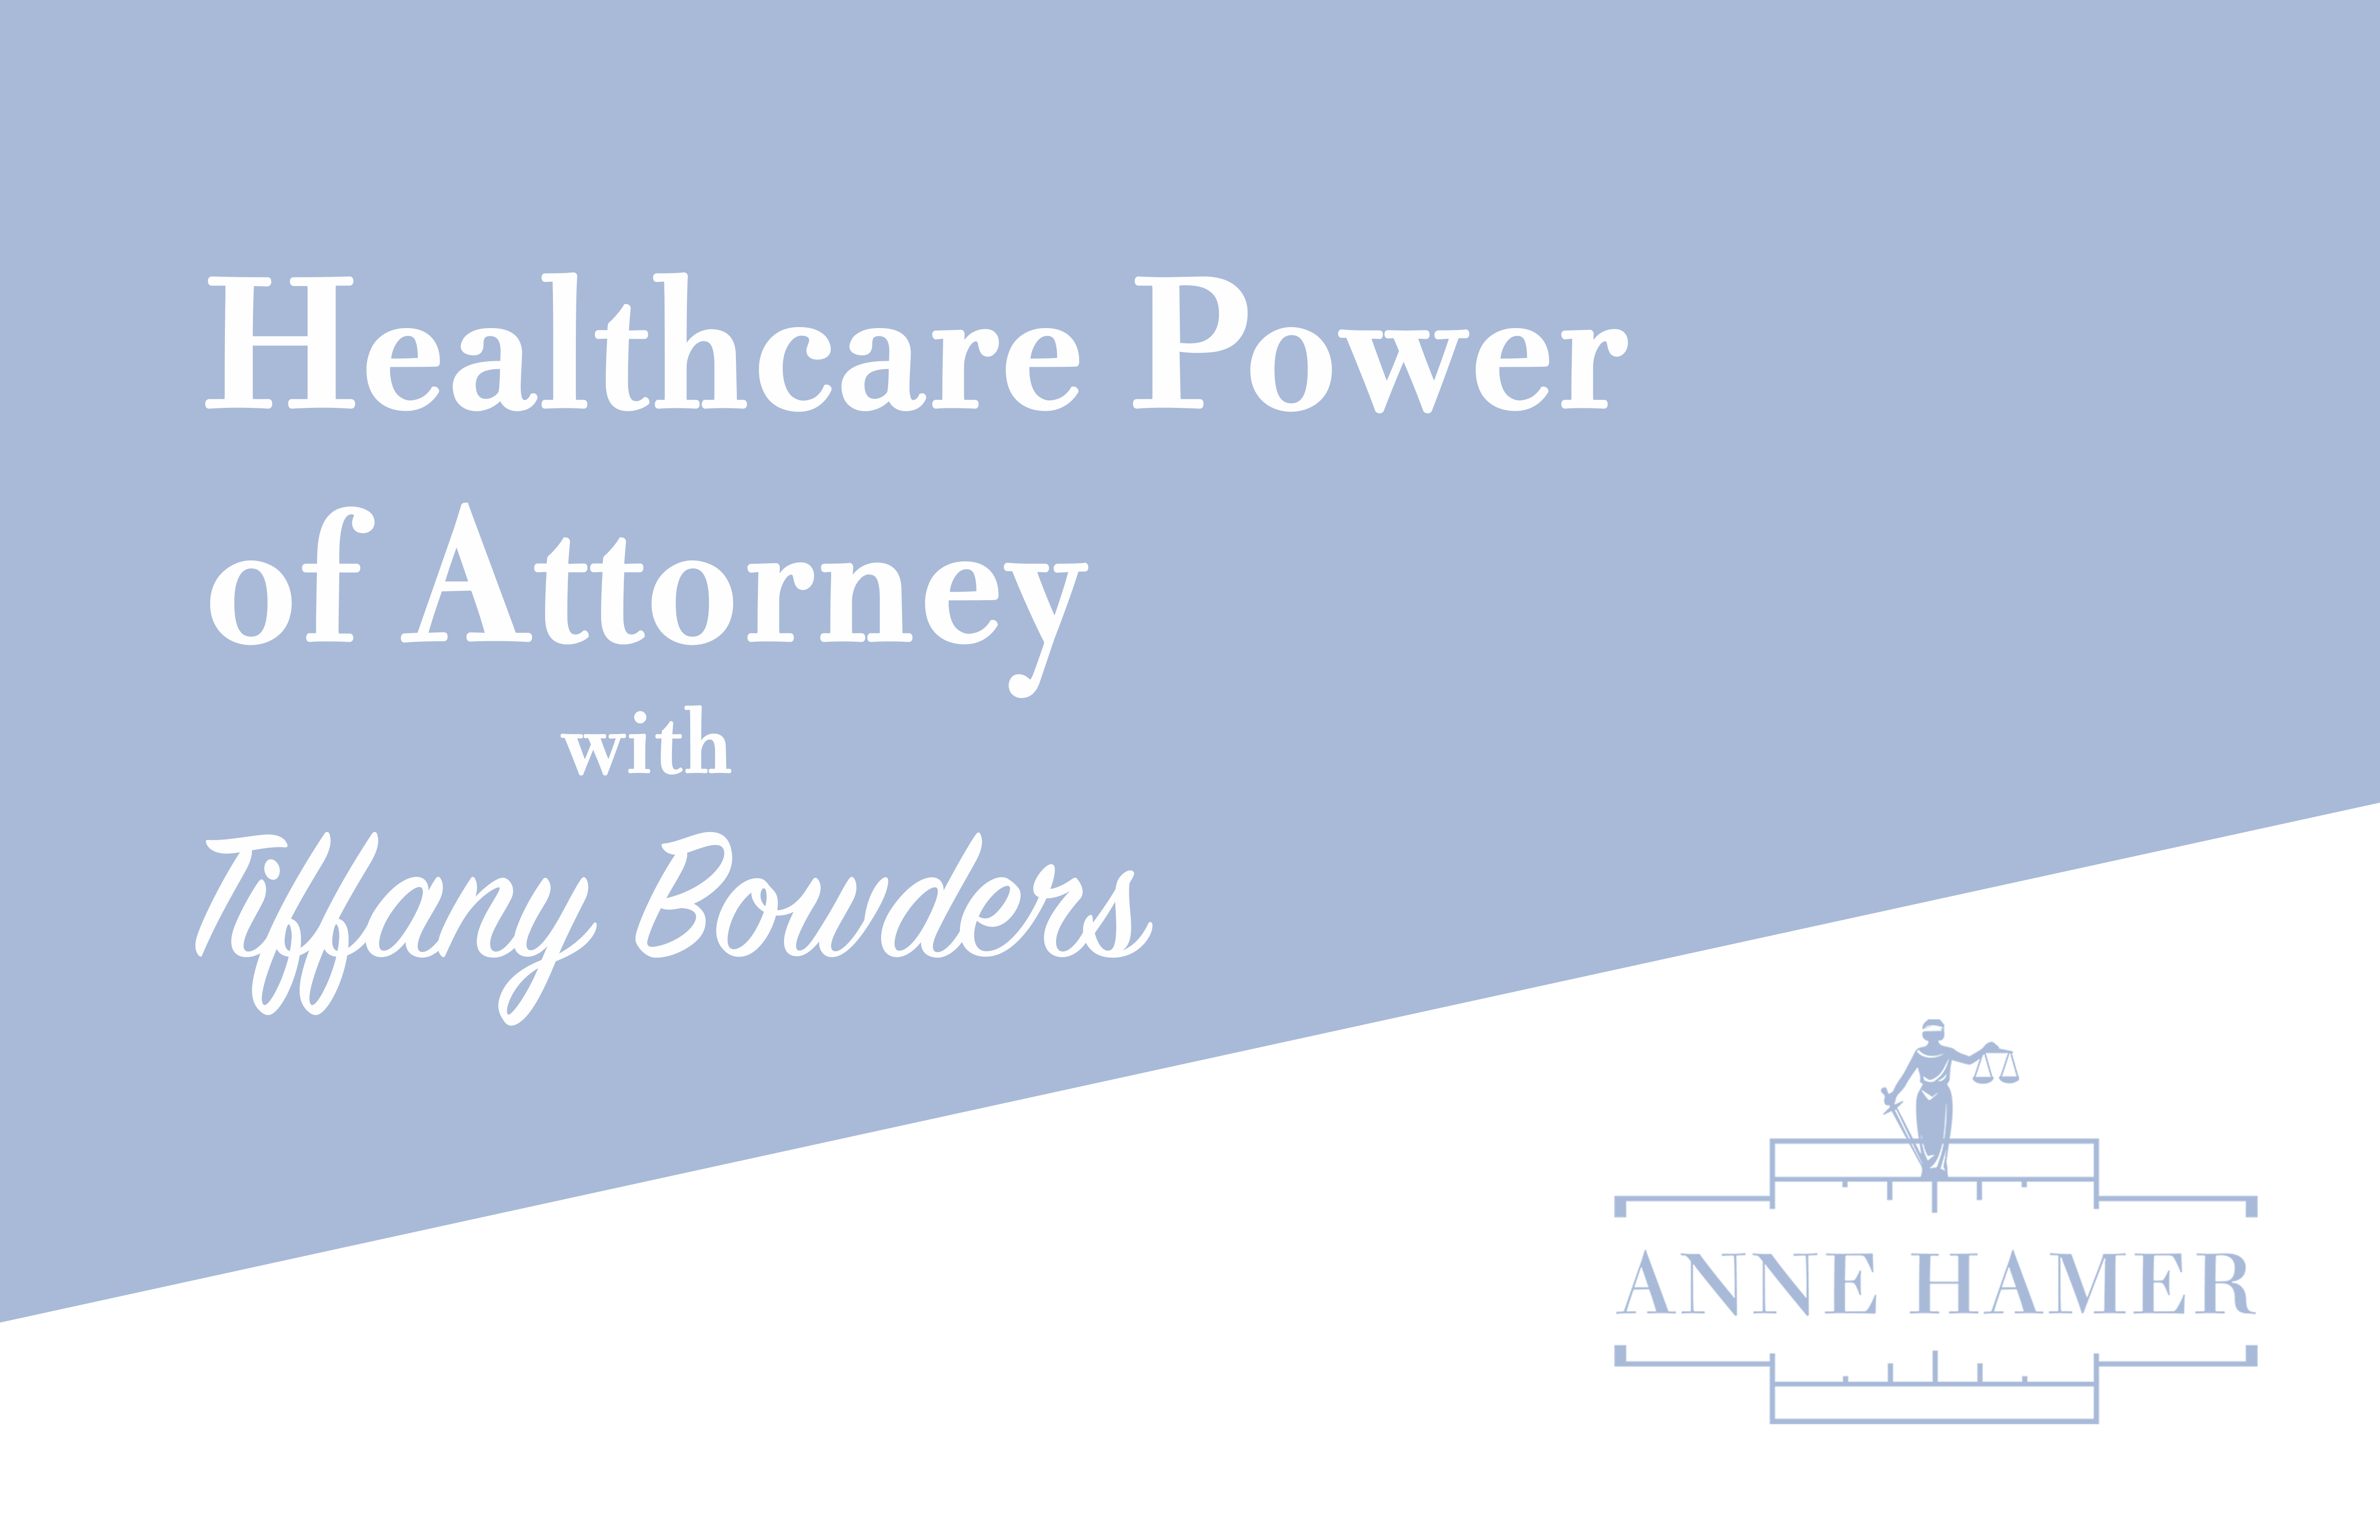 Healthcare Power of Attorney with Tiffany Bowders